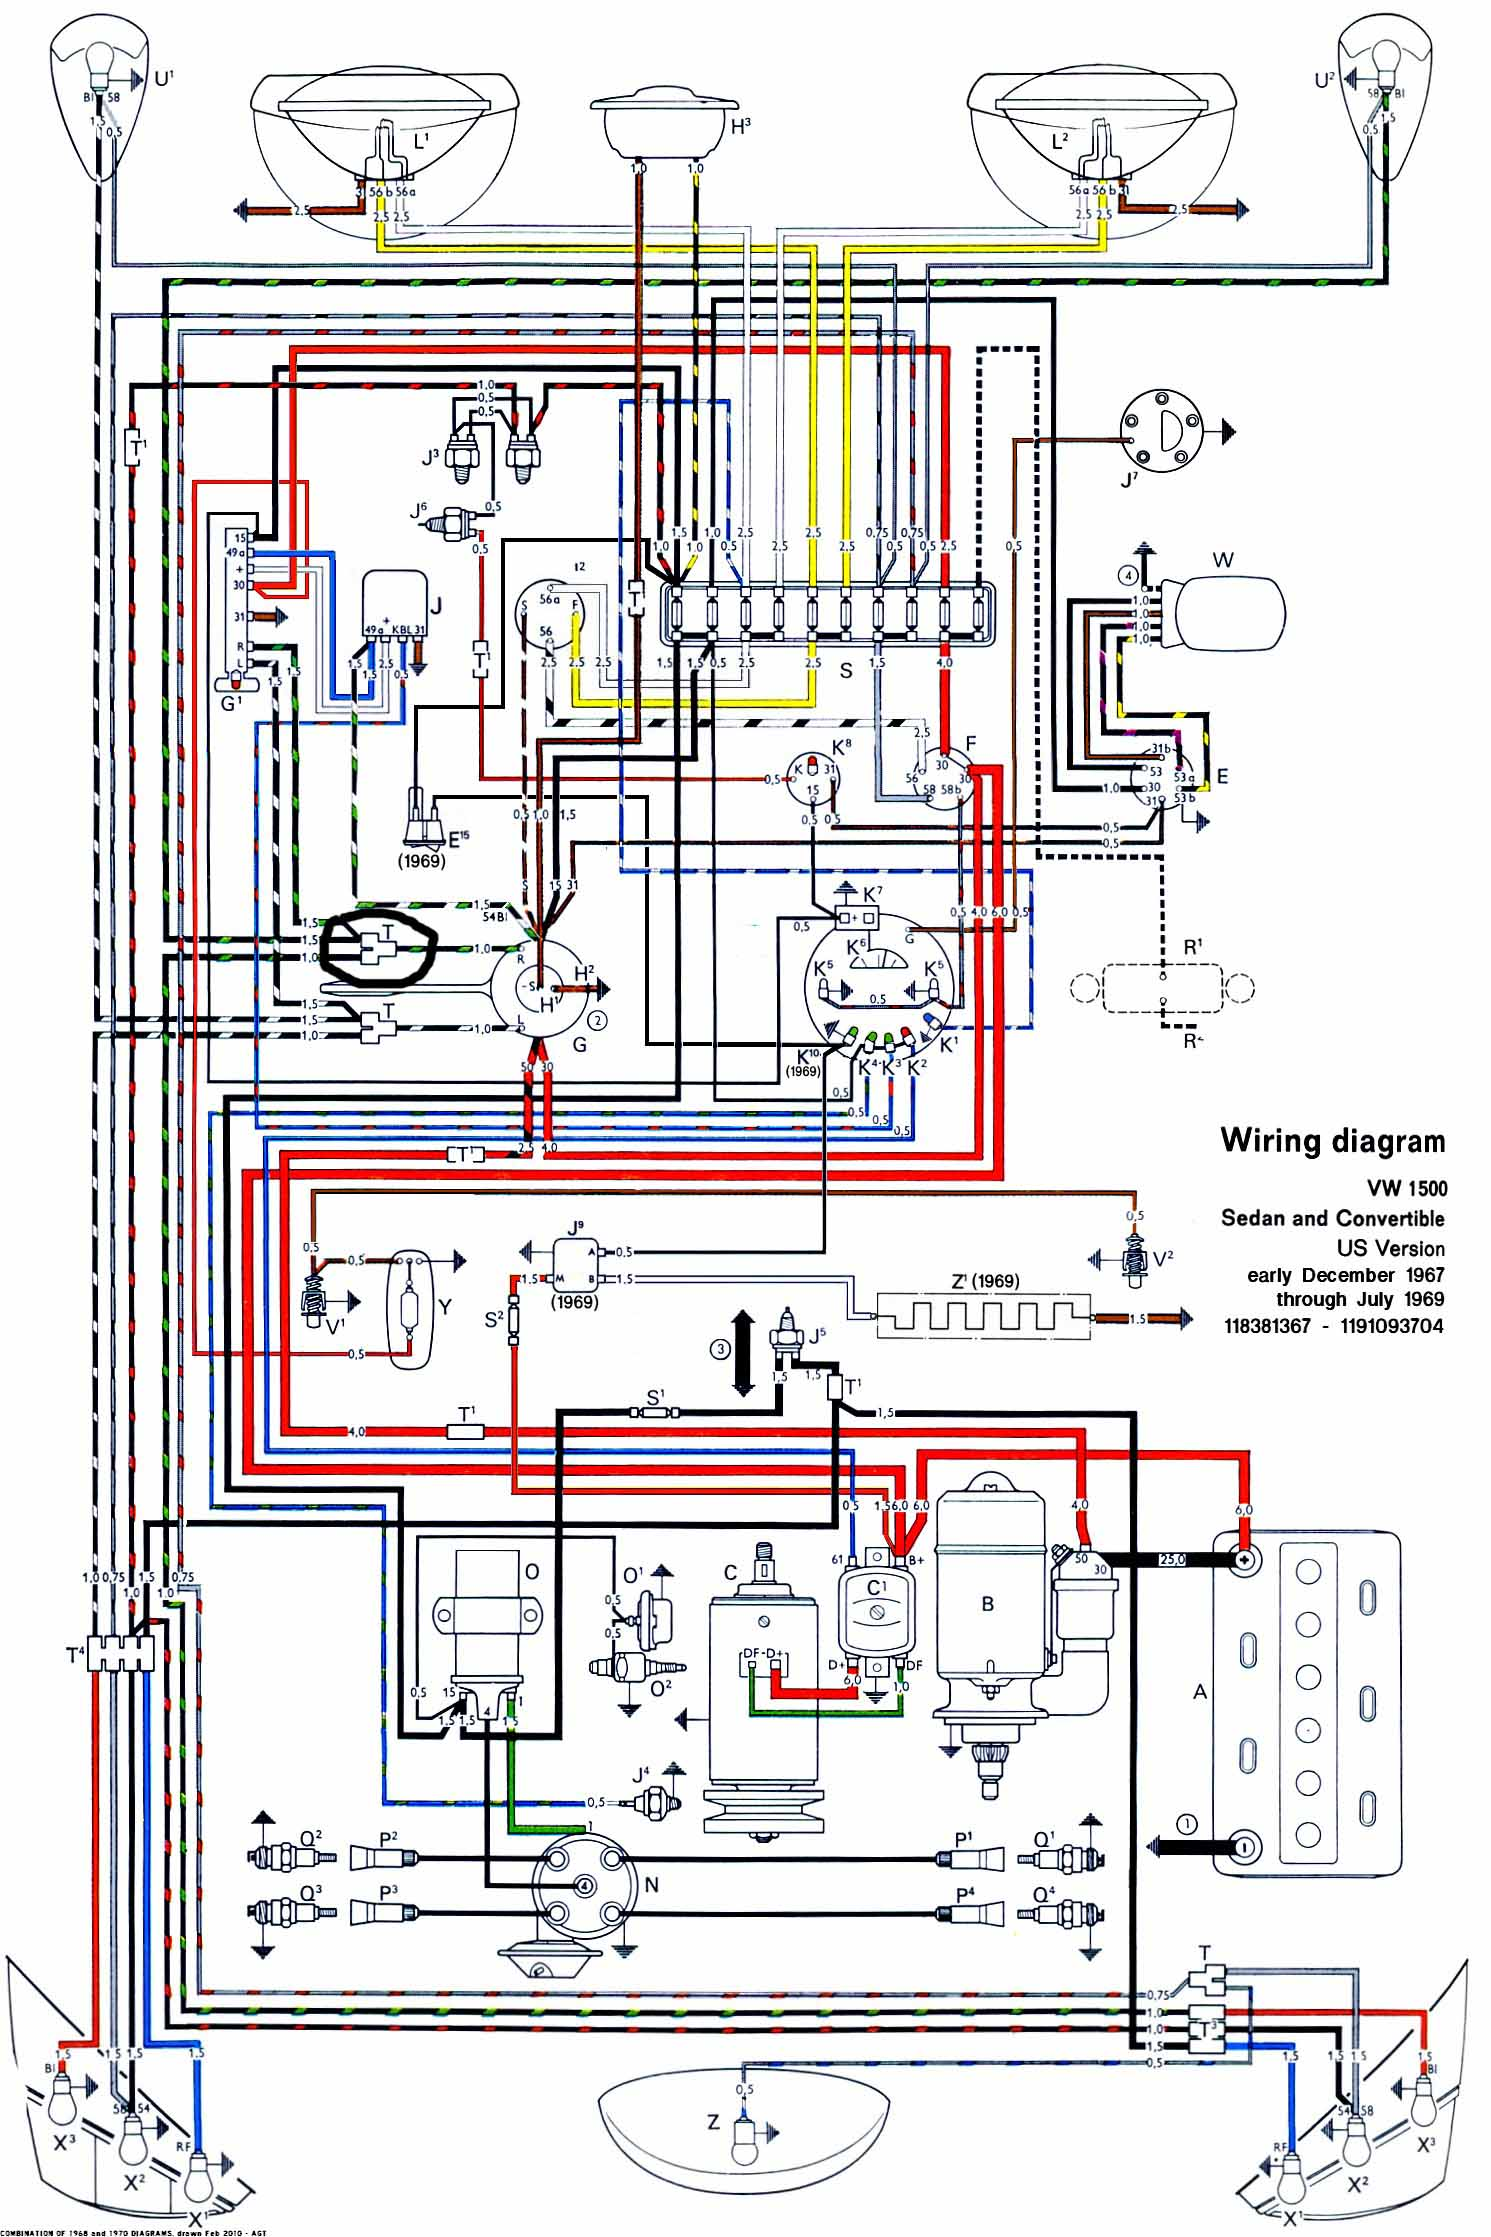 hight resolution of wiring diagram for 1971 vw beetle the wiring diagram 1973 vw bug wiring harness vw beetle wiring harness